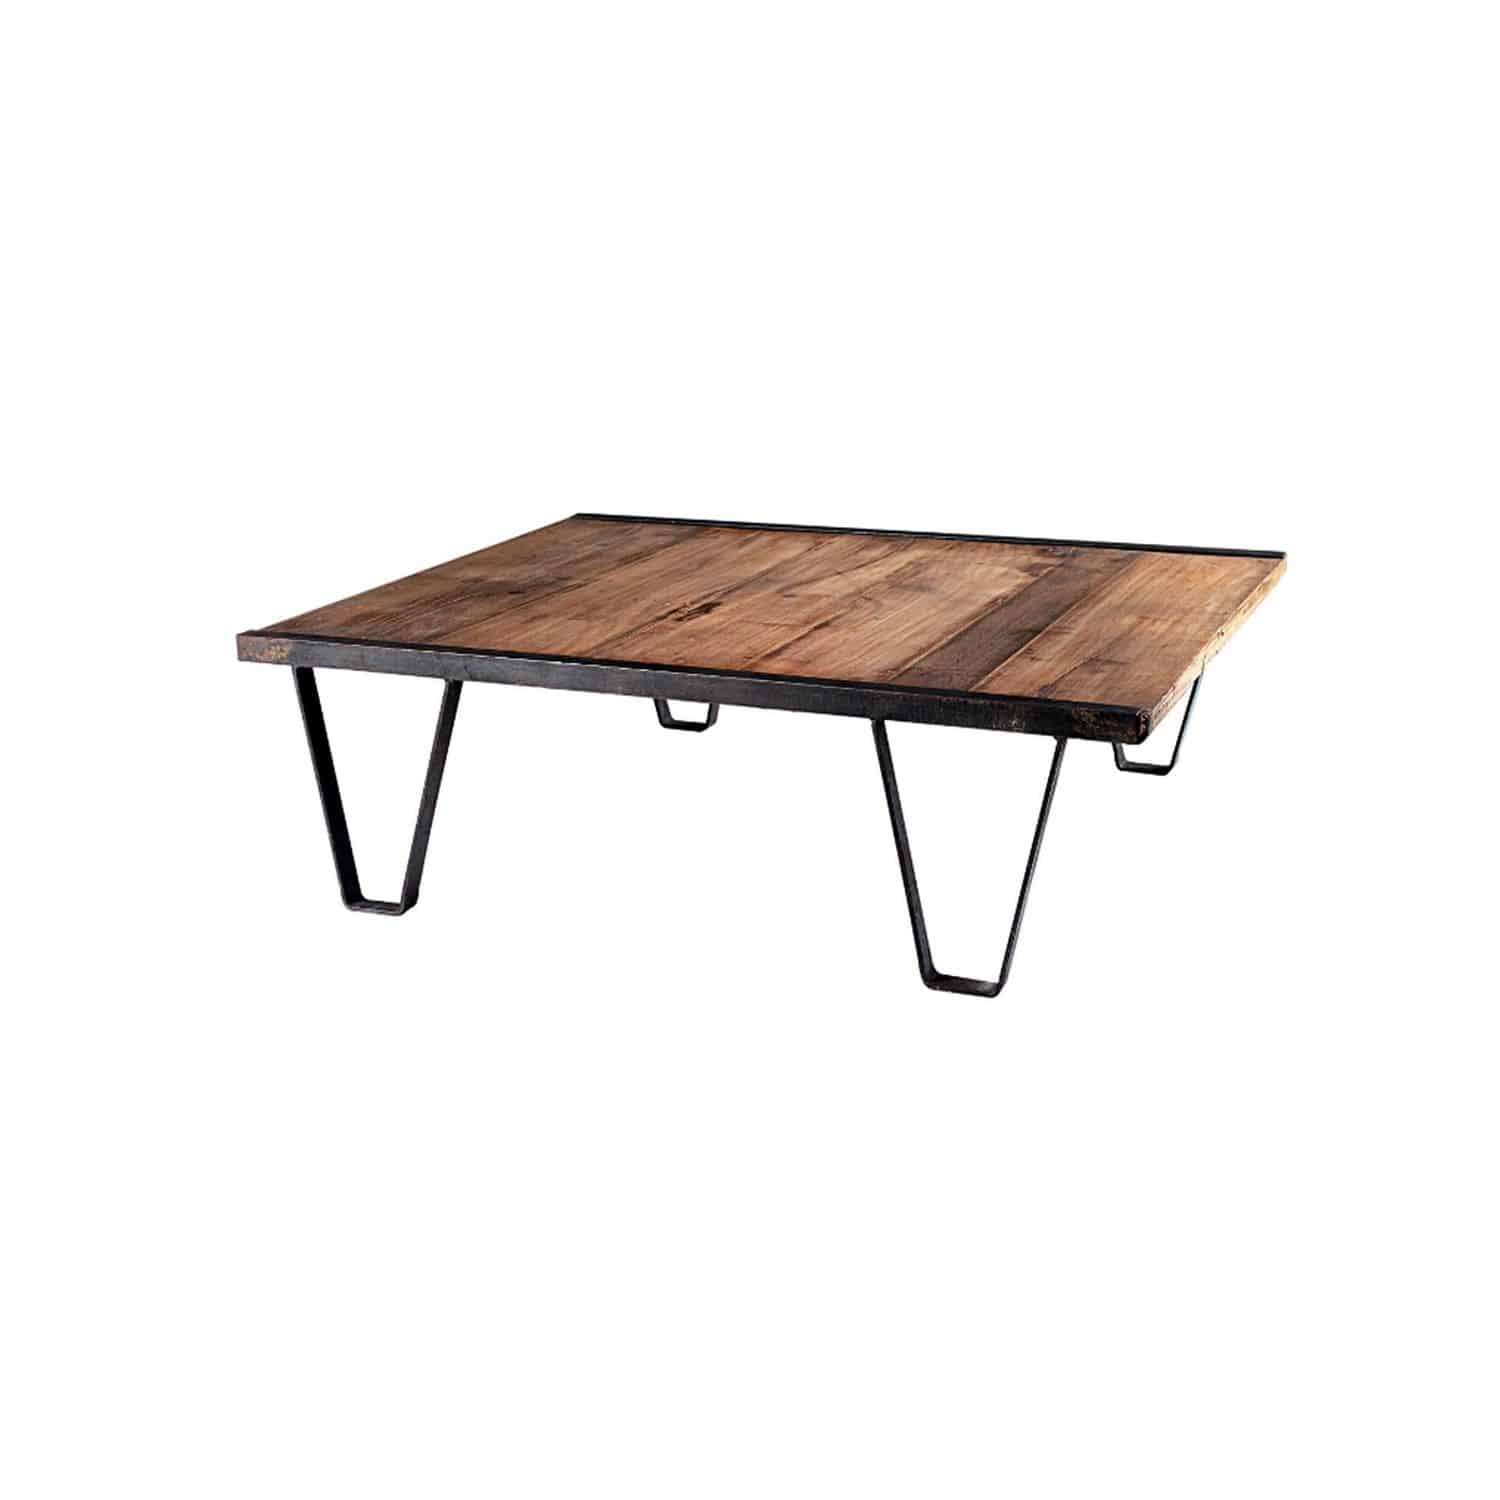 Good Industrial Style Coffee Table / Wooden / Metal / Rectangular   PLATFORM Part 24